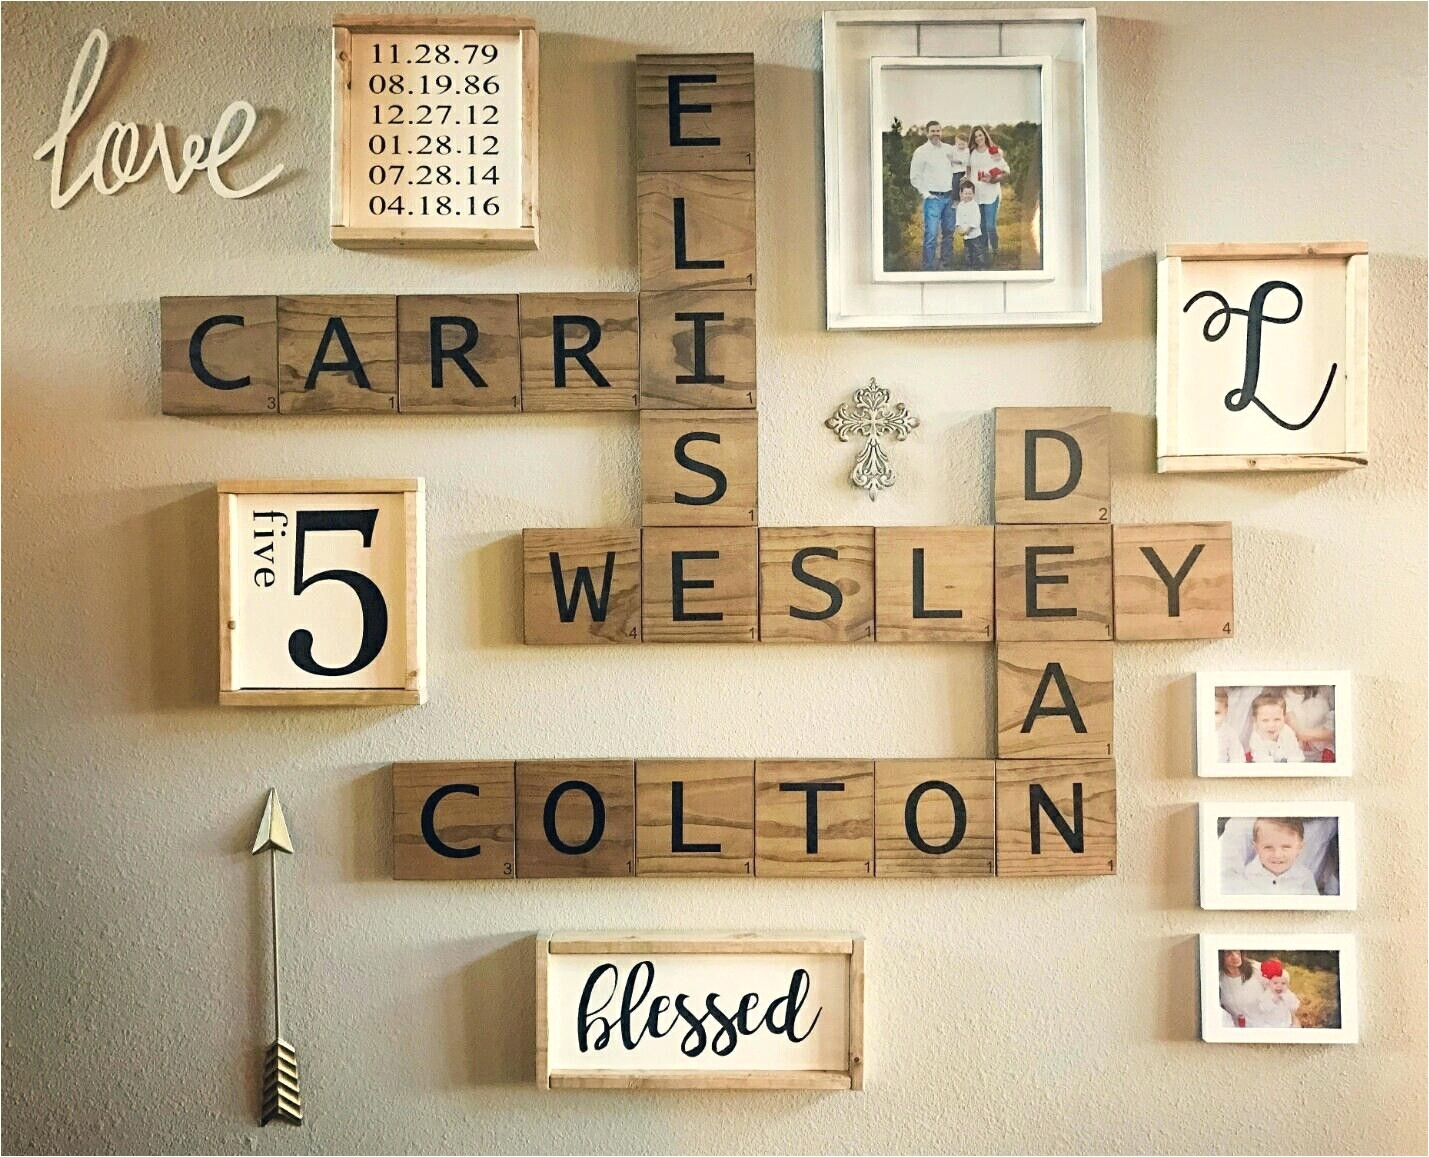 Large Free Standing Letters For Decorating Wall Decor Metal Letter within Metal Letter Wall Art (Image 8 of 20)